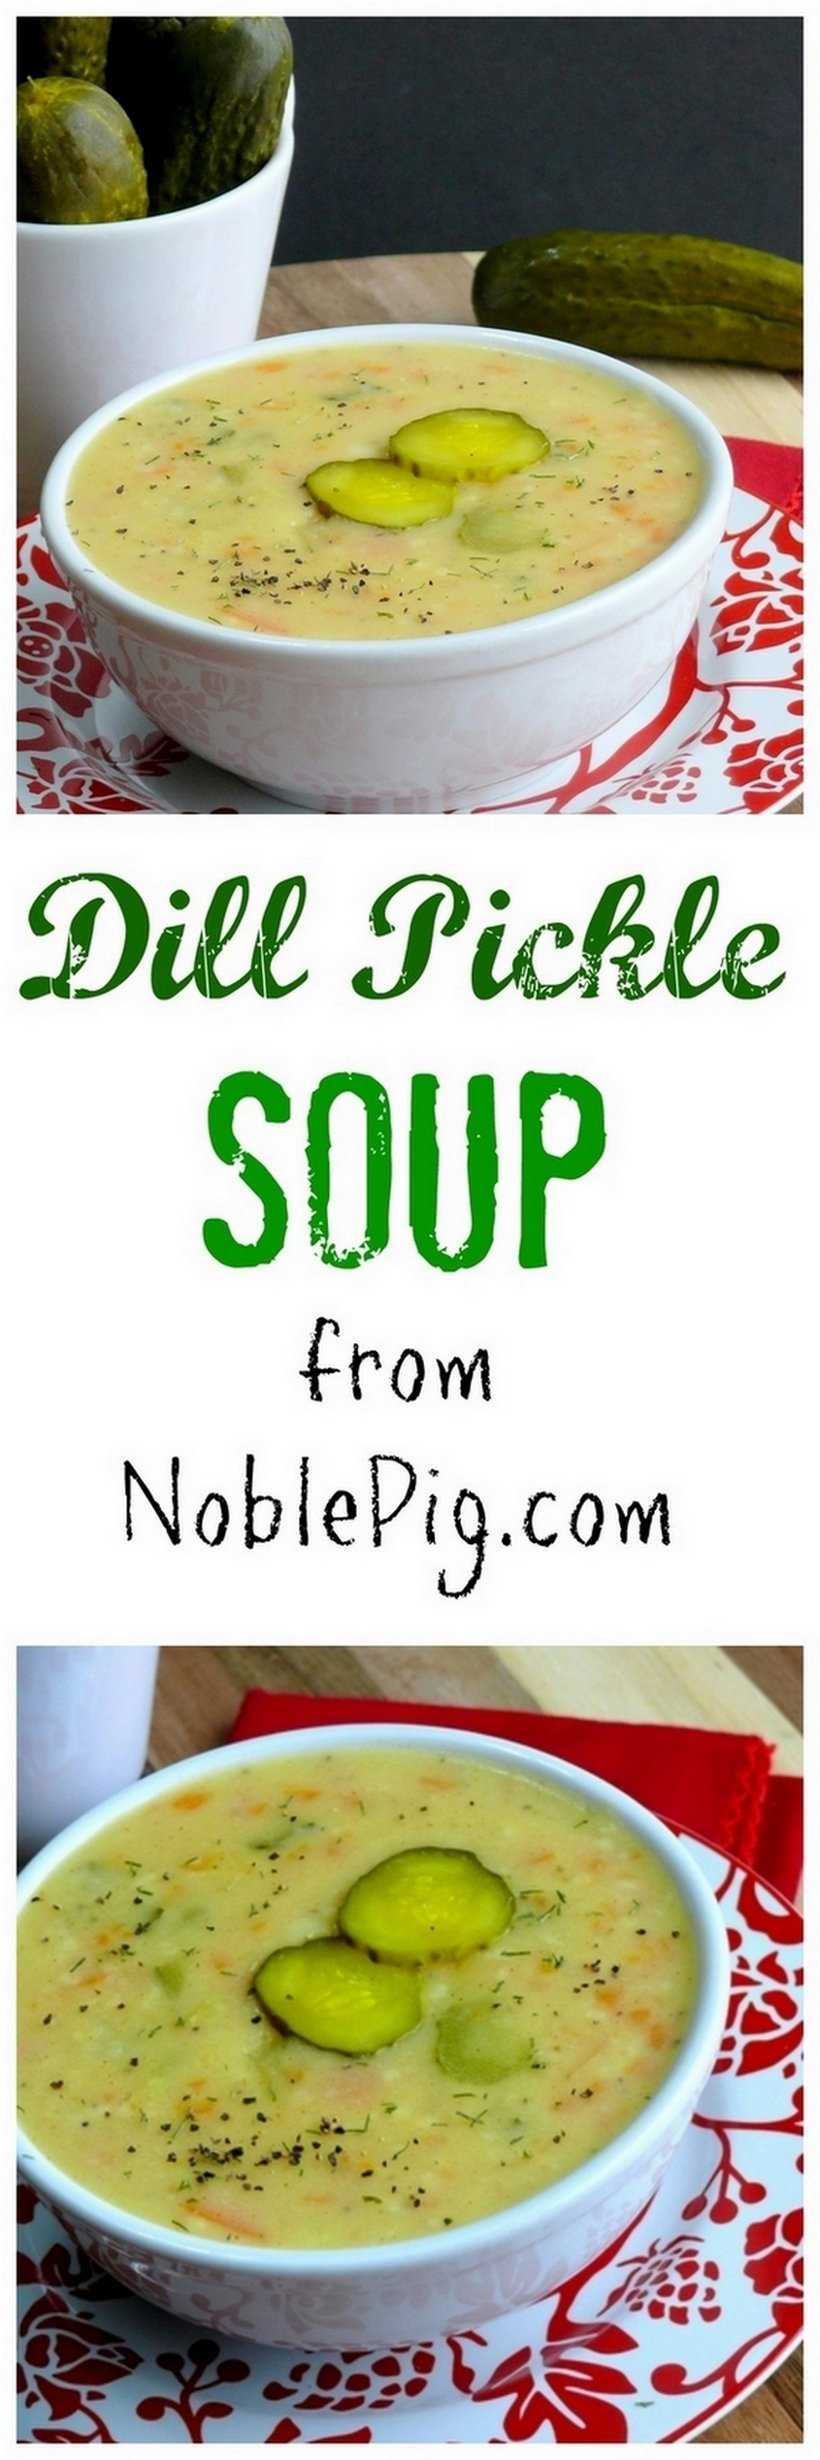 VIDEO + Recipe: This recipe for Dill Pickle Soup has swept the nation! It will become a staple in your household. #noblepig #dillpicklesoup #pickles #dill #soup